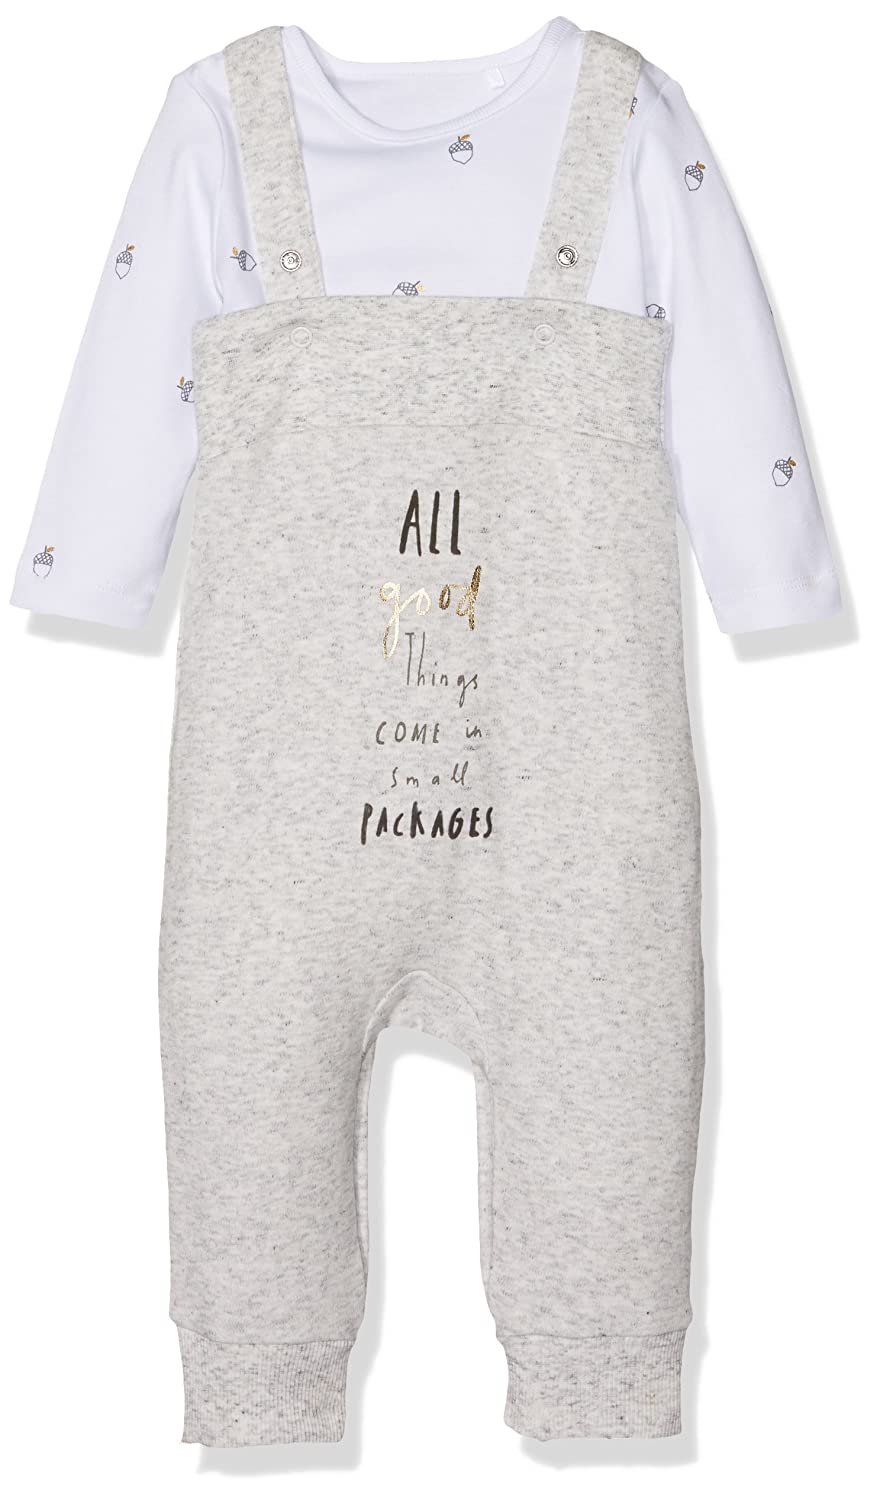 Small Packages Bodysuit and Dungaree Set Grey Marl Mothercare MA535